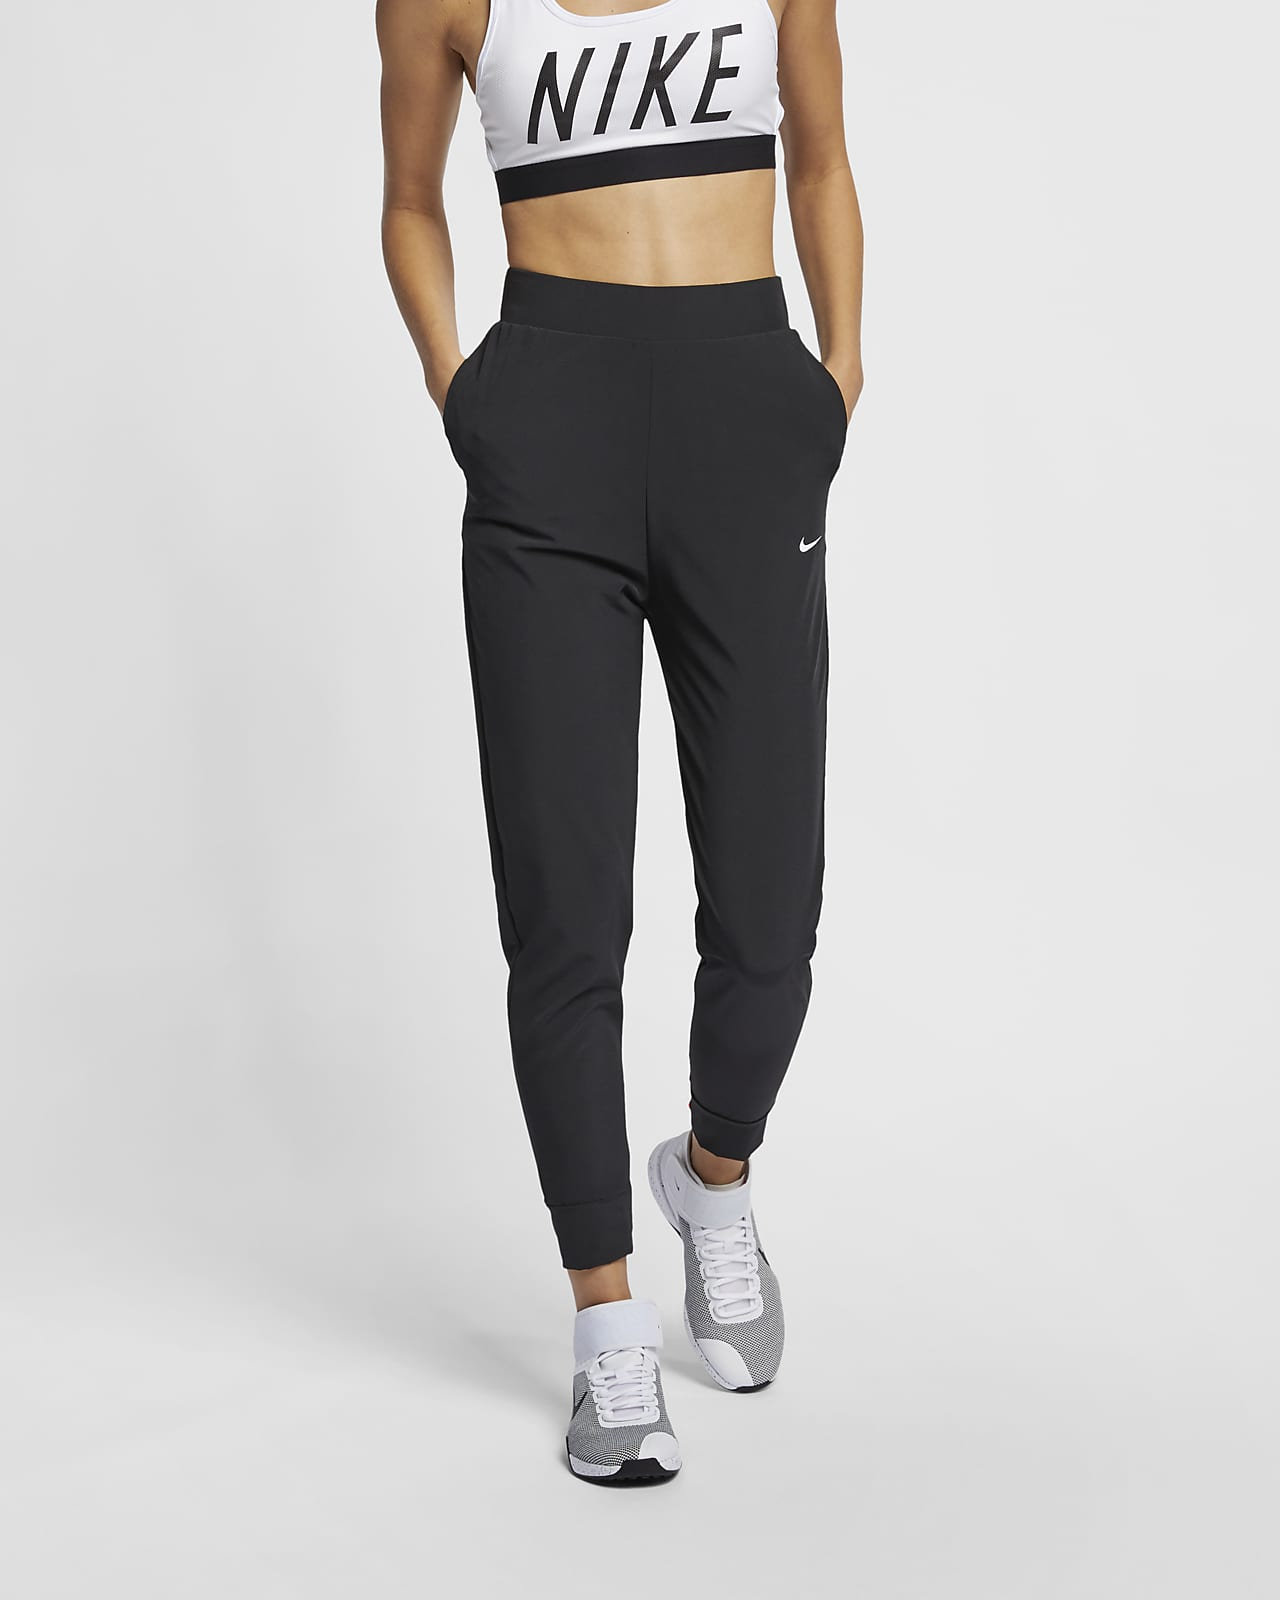 Nike Bliss Women's Training Trousers